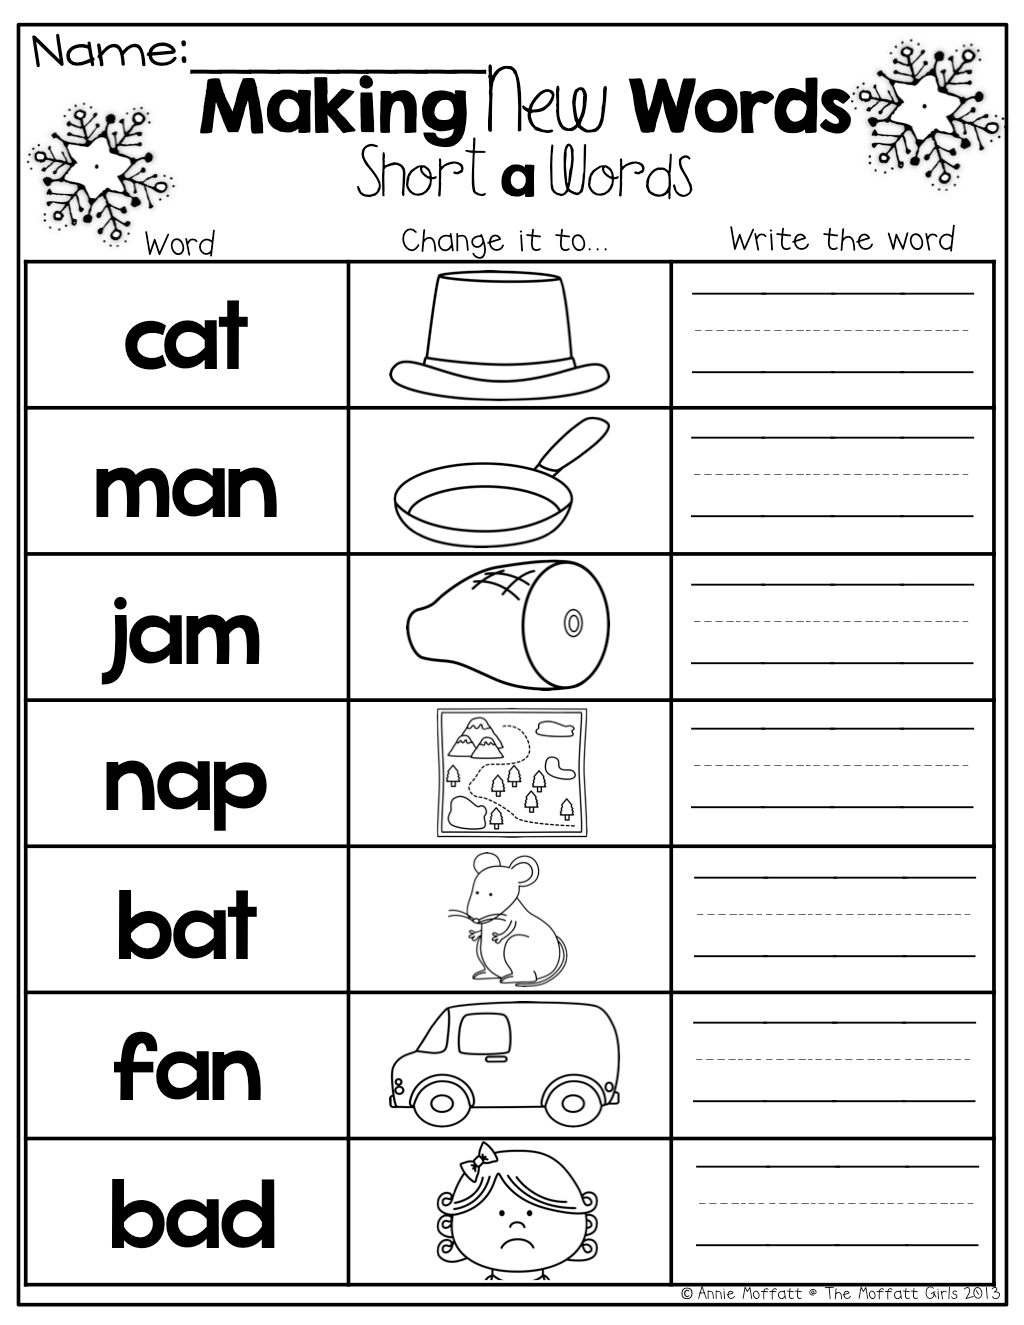 Worksheet Letter Sound Worksheets Worksheet Fun